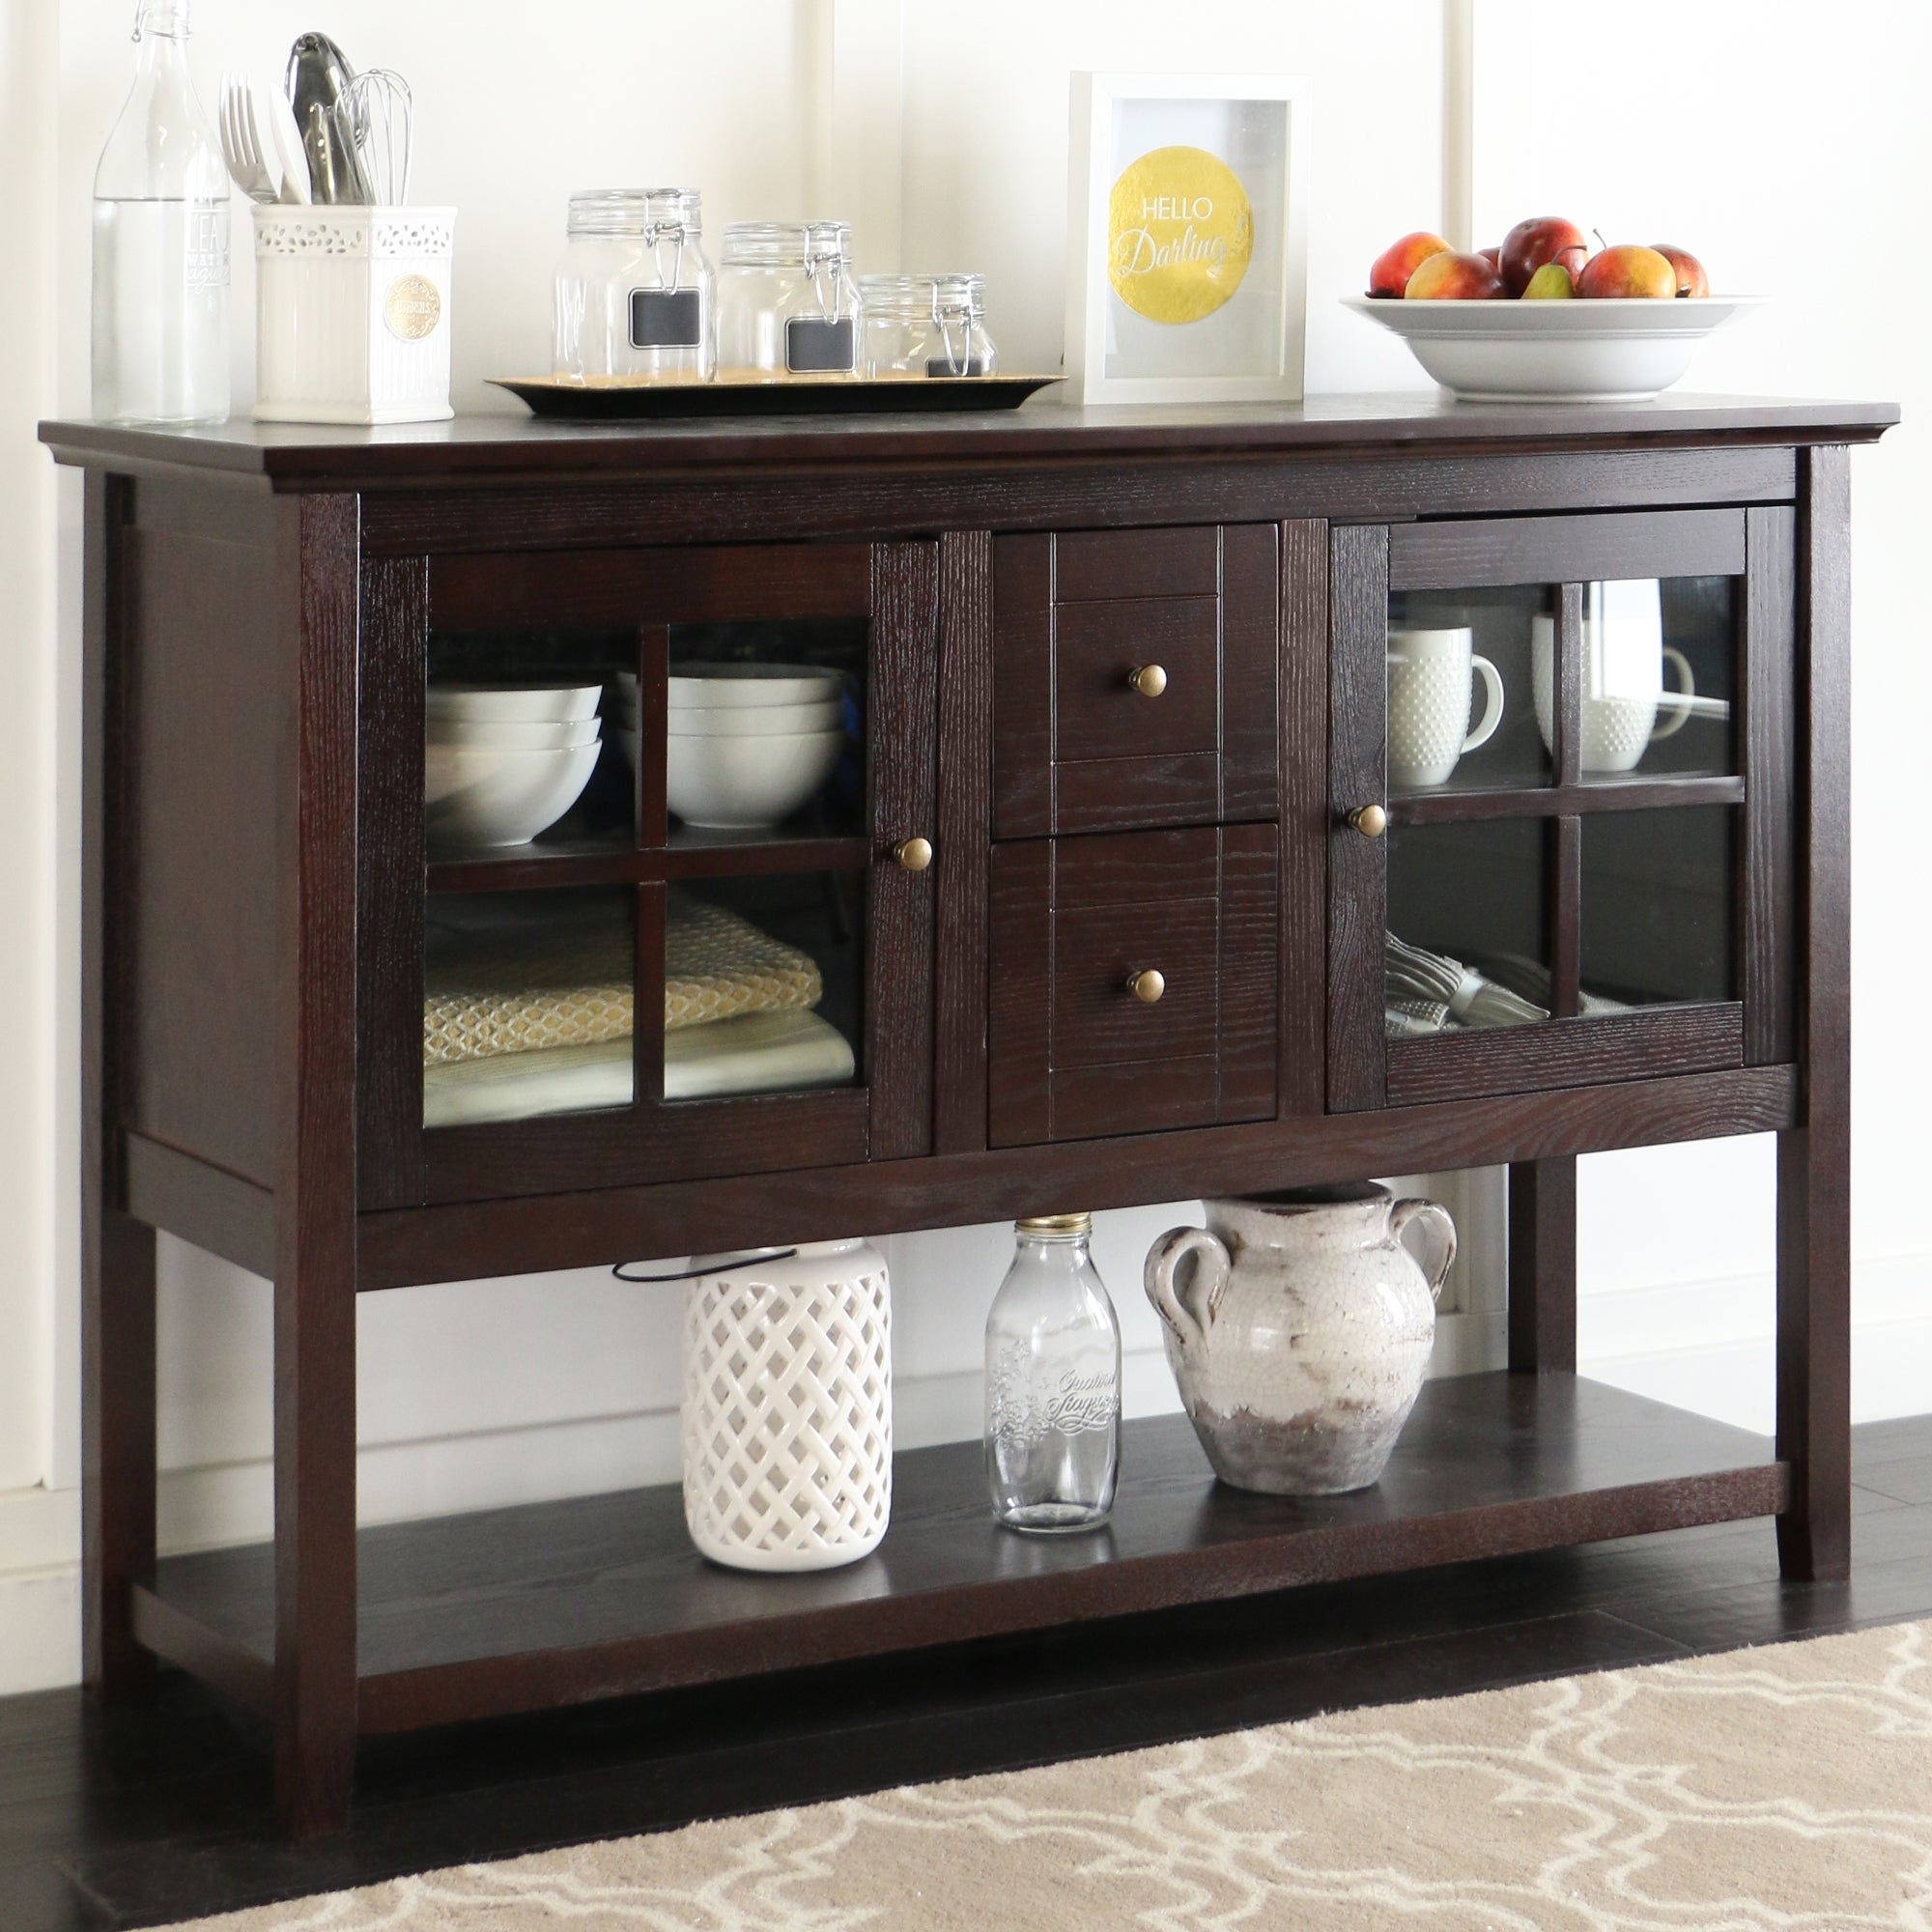 Unbranded 52-inch Espresso Wood Console Table/ Buffet (52...